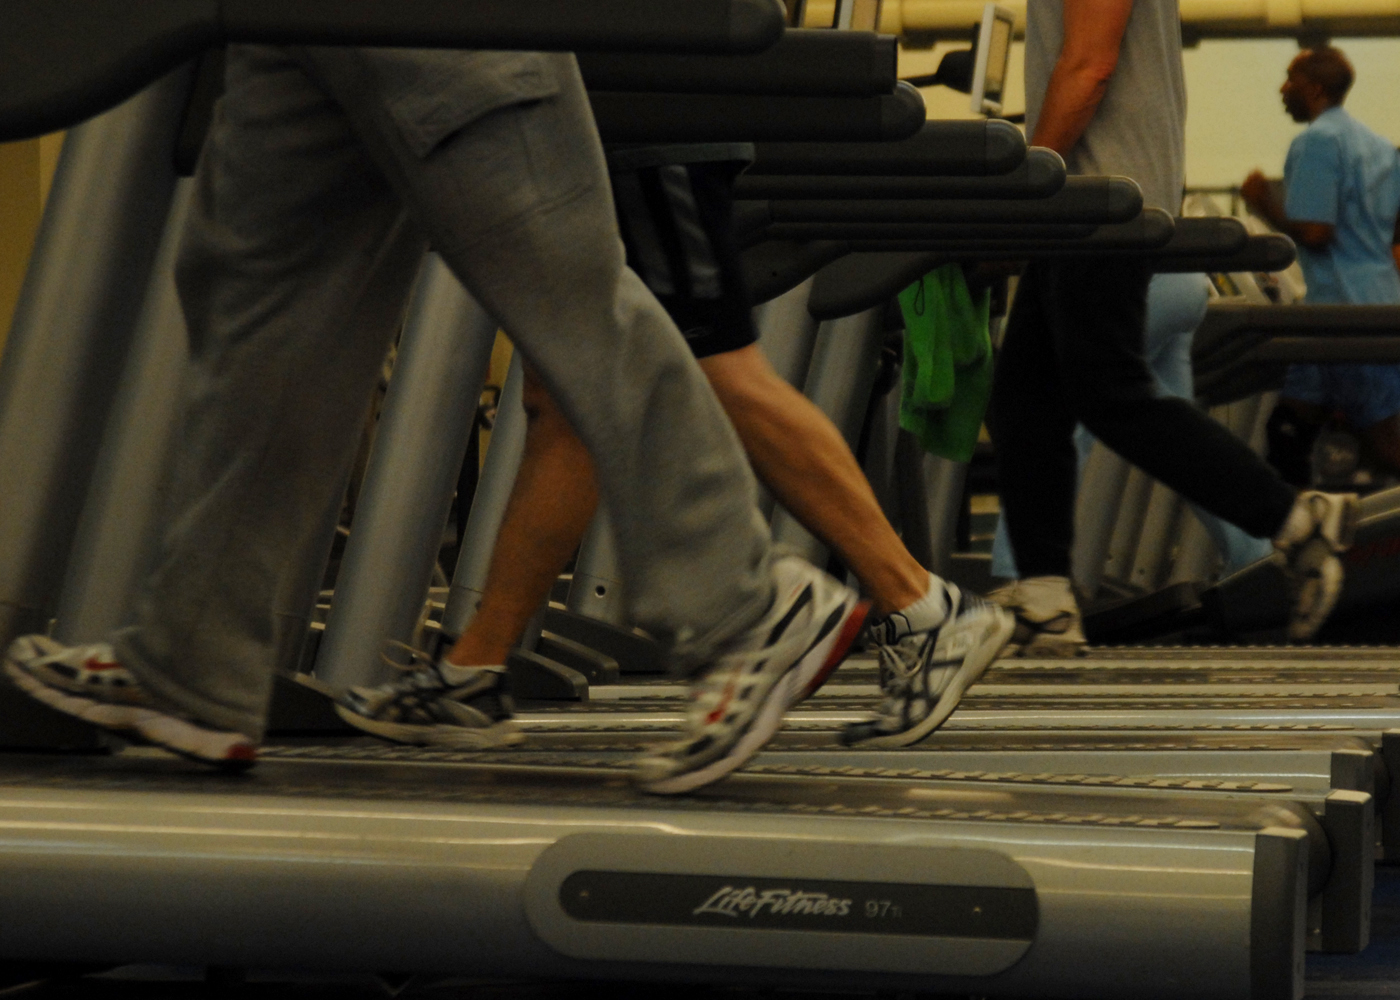 Treadmills aren't the only means of good cardio workouts.